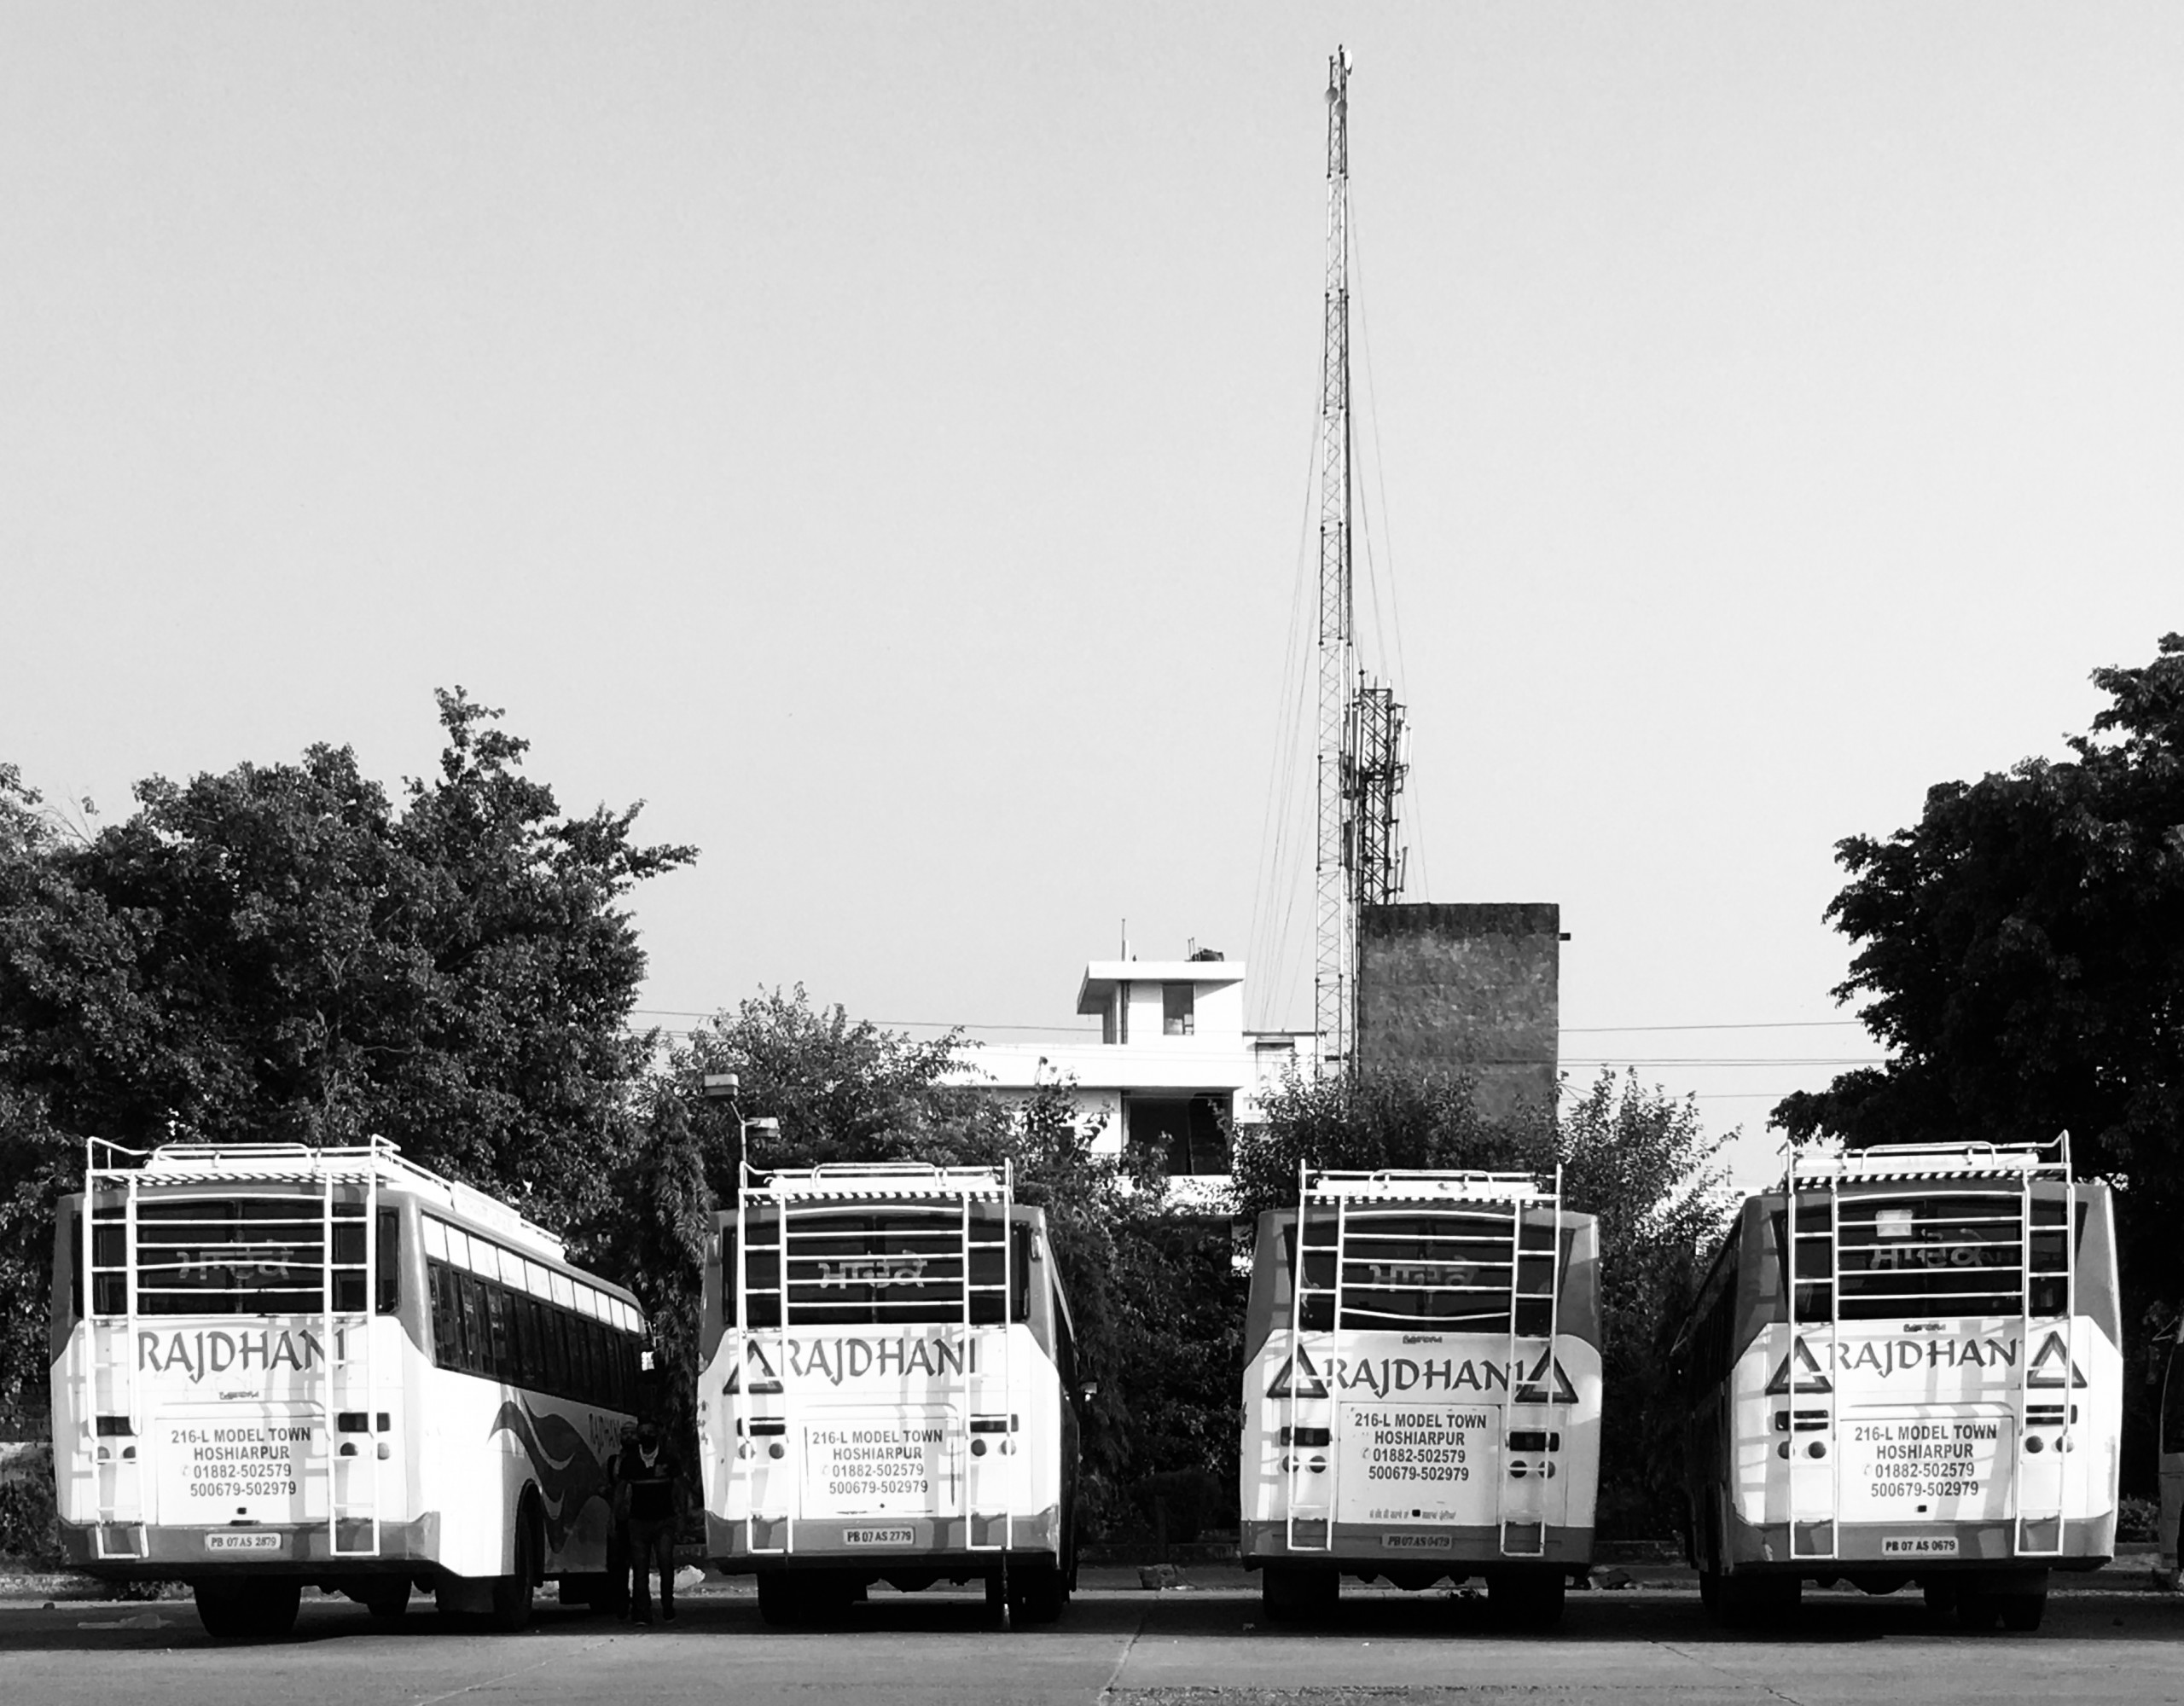 Buses in black and white